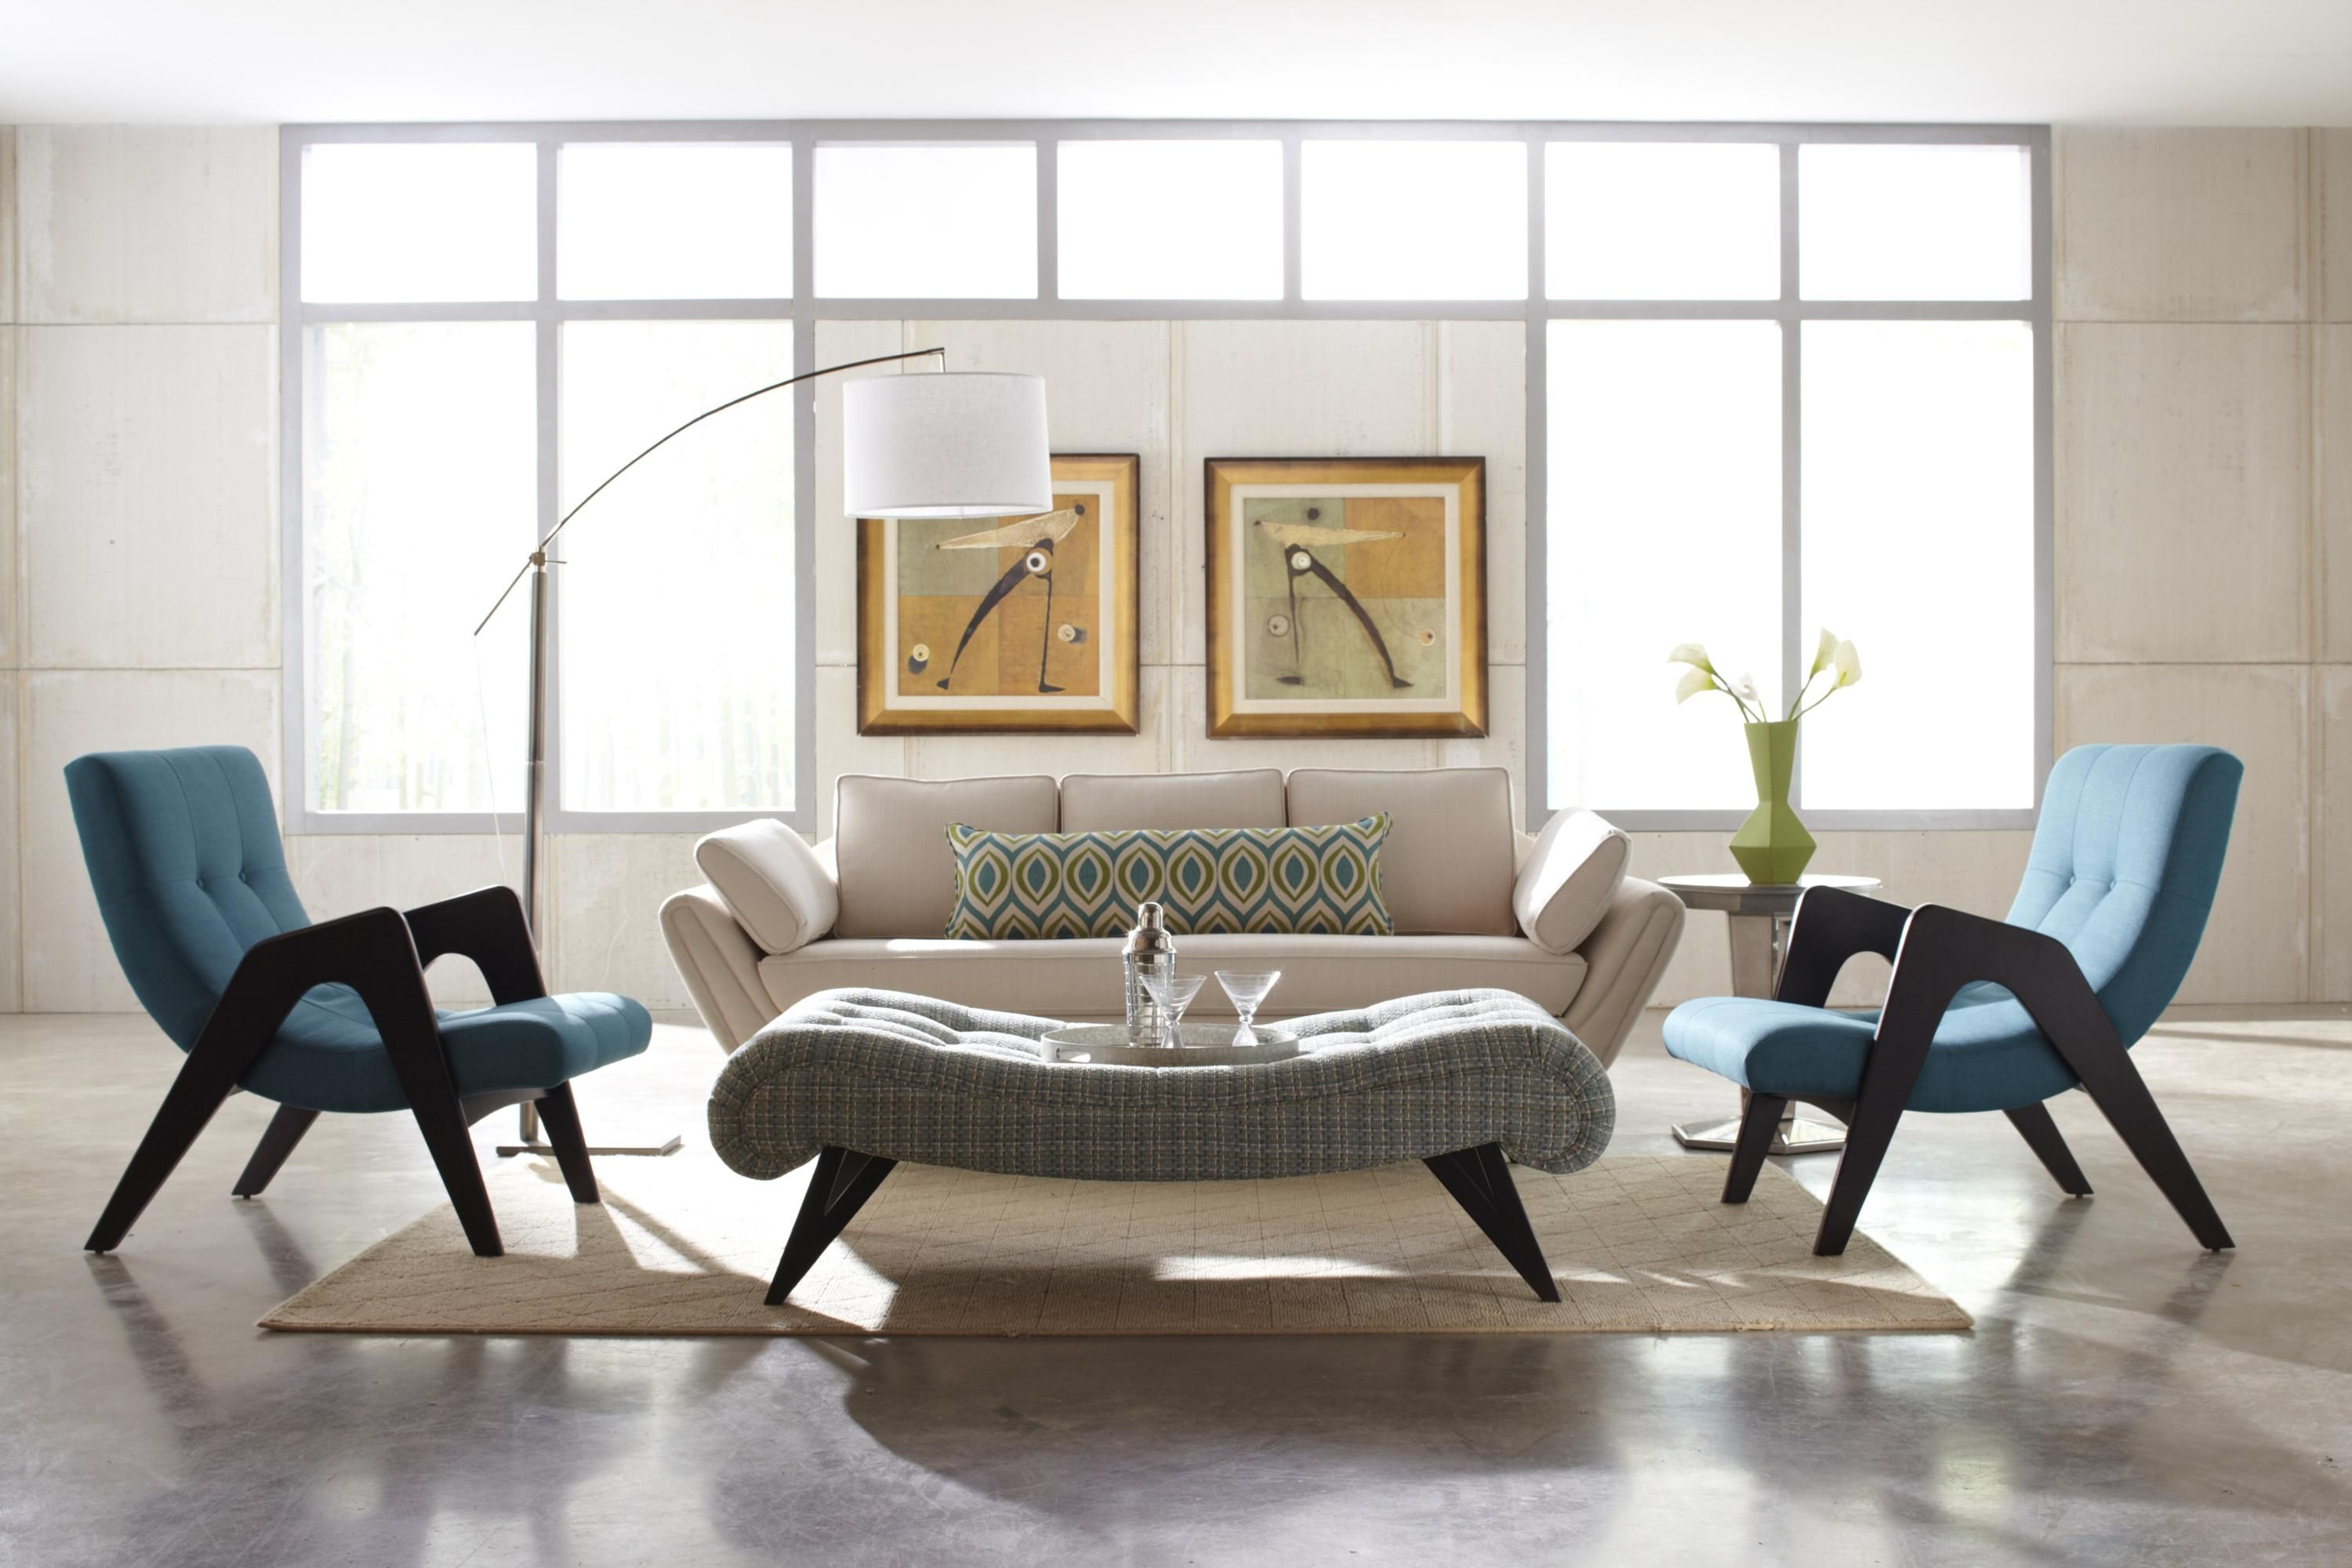 Simple modern accent chairs for living room 79 intended for interior home inspiration with modern accent chairs for living room